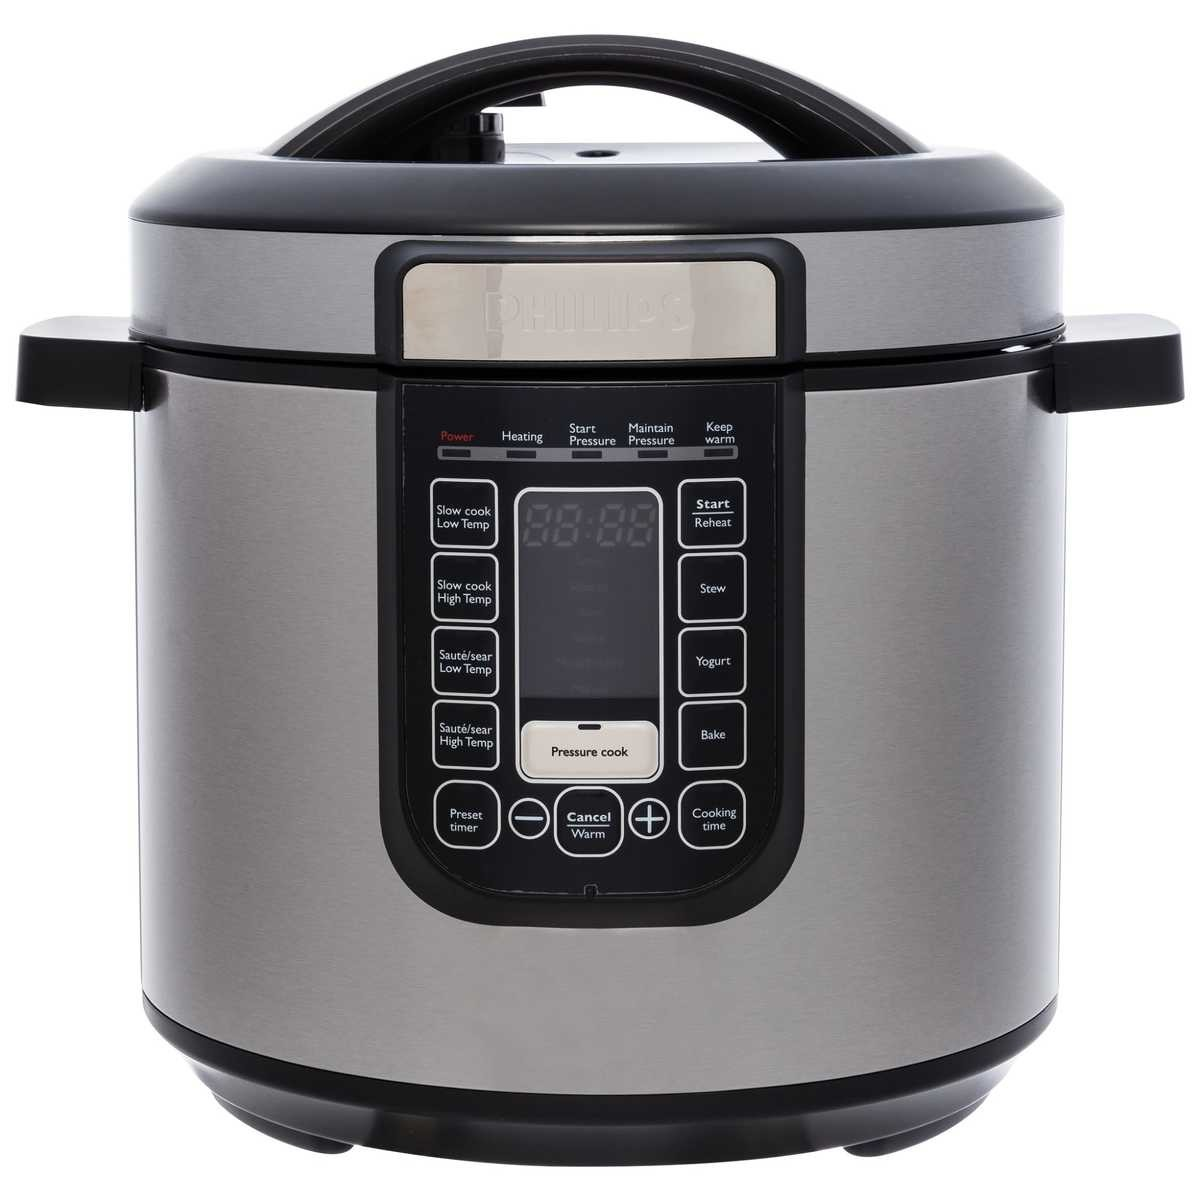 Glomorous Model Number 99700 Philips Viva Collection Cooker Philips Viva Collection Cooker Big W Cooks Essential Pressure Cooker Recipes Cooks Essential Pressure Cooker Manual houzz 01 Cooks Essential Pressure Cooker